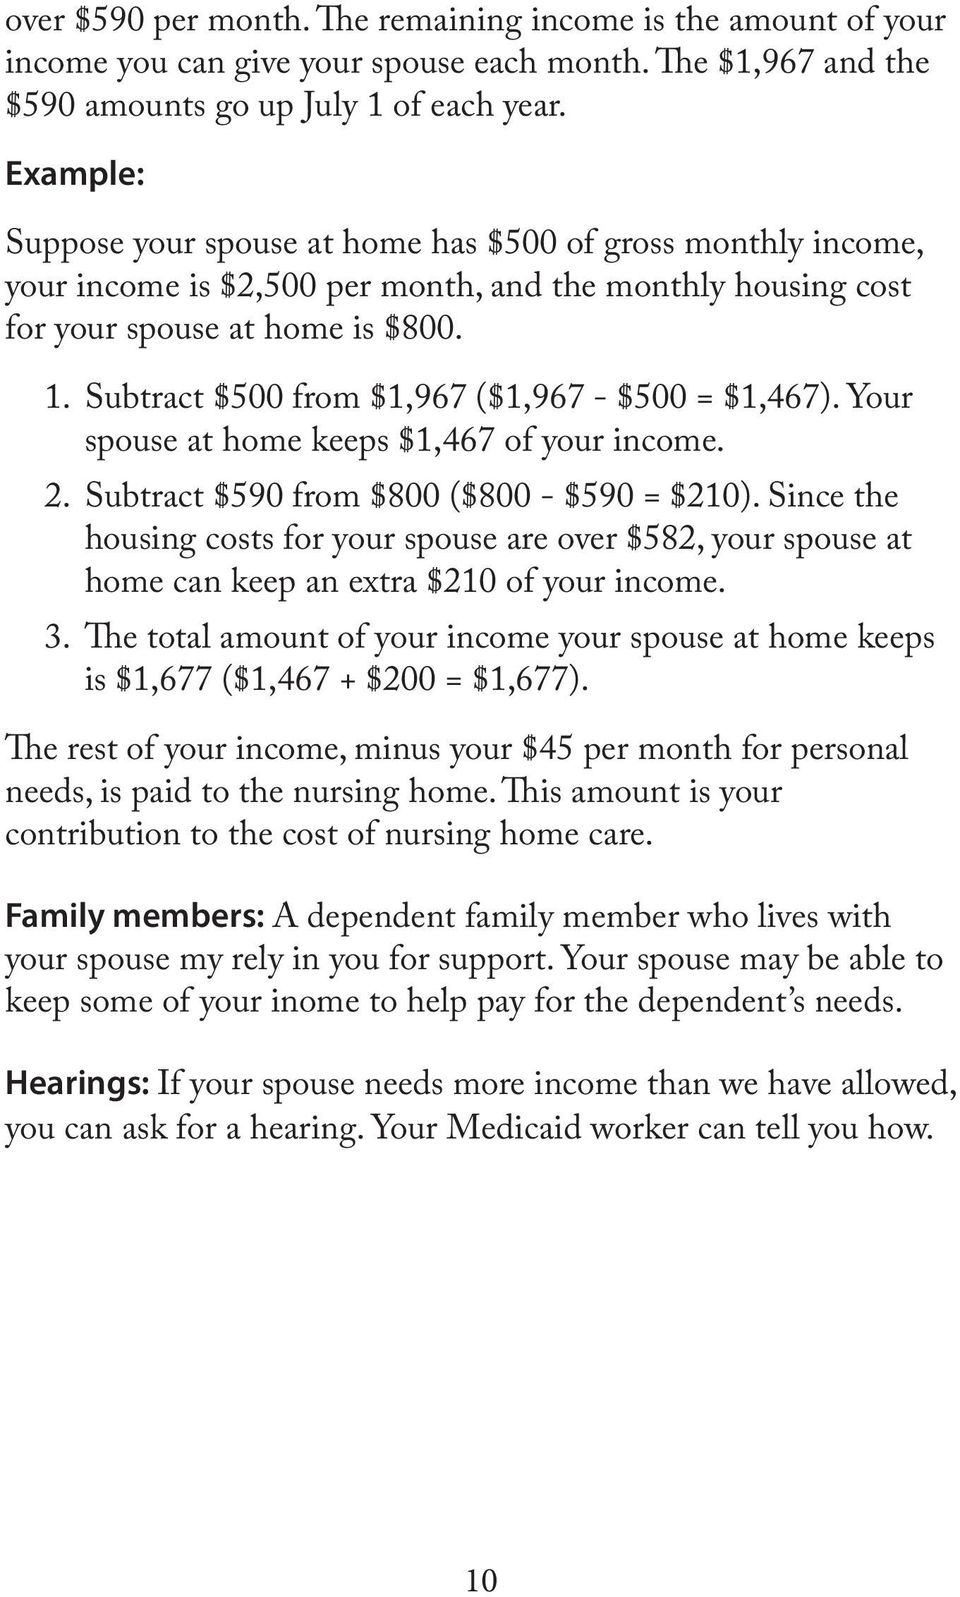 Subtract $500 from $1,967 ($1,967 - $500 = $1,467). Your spouse at home keeps $1,467 of your income. 2. Subtract $590 from $800 ($800 - $590 = $210).